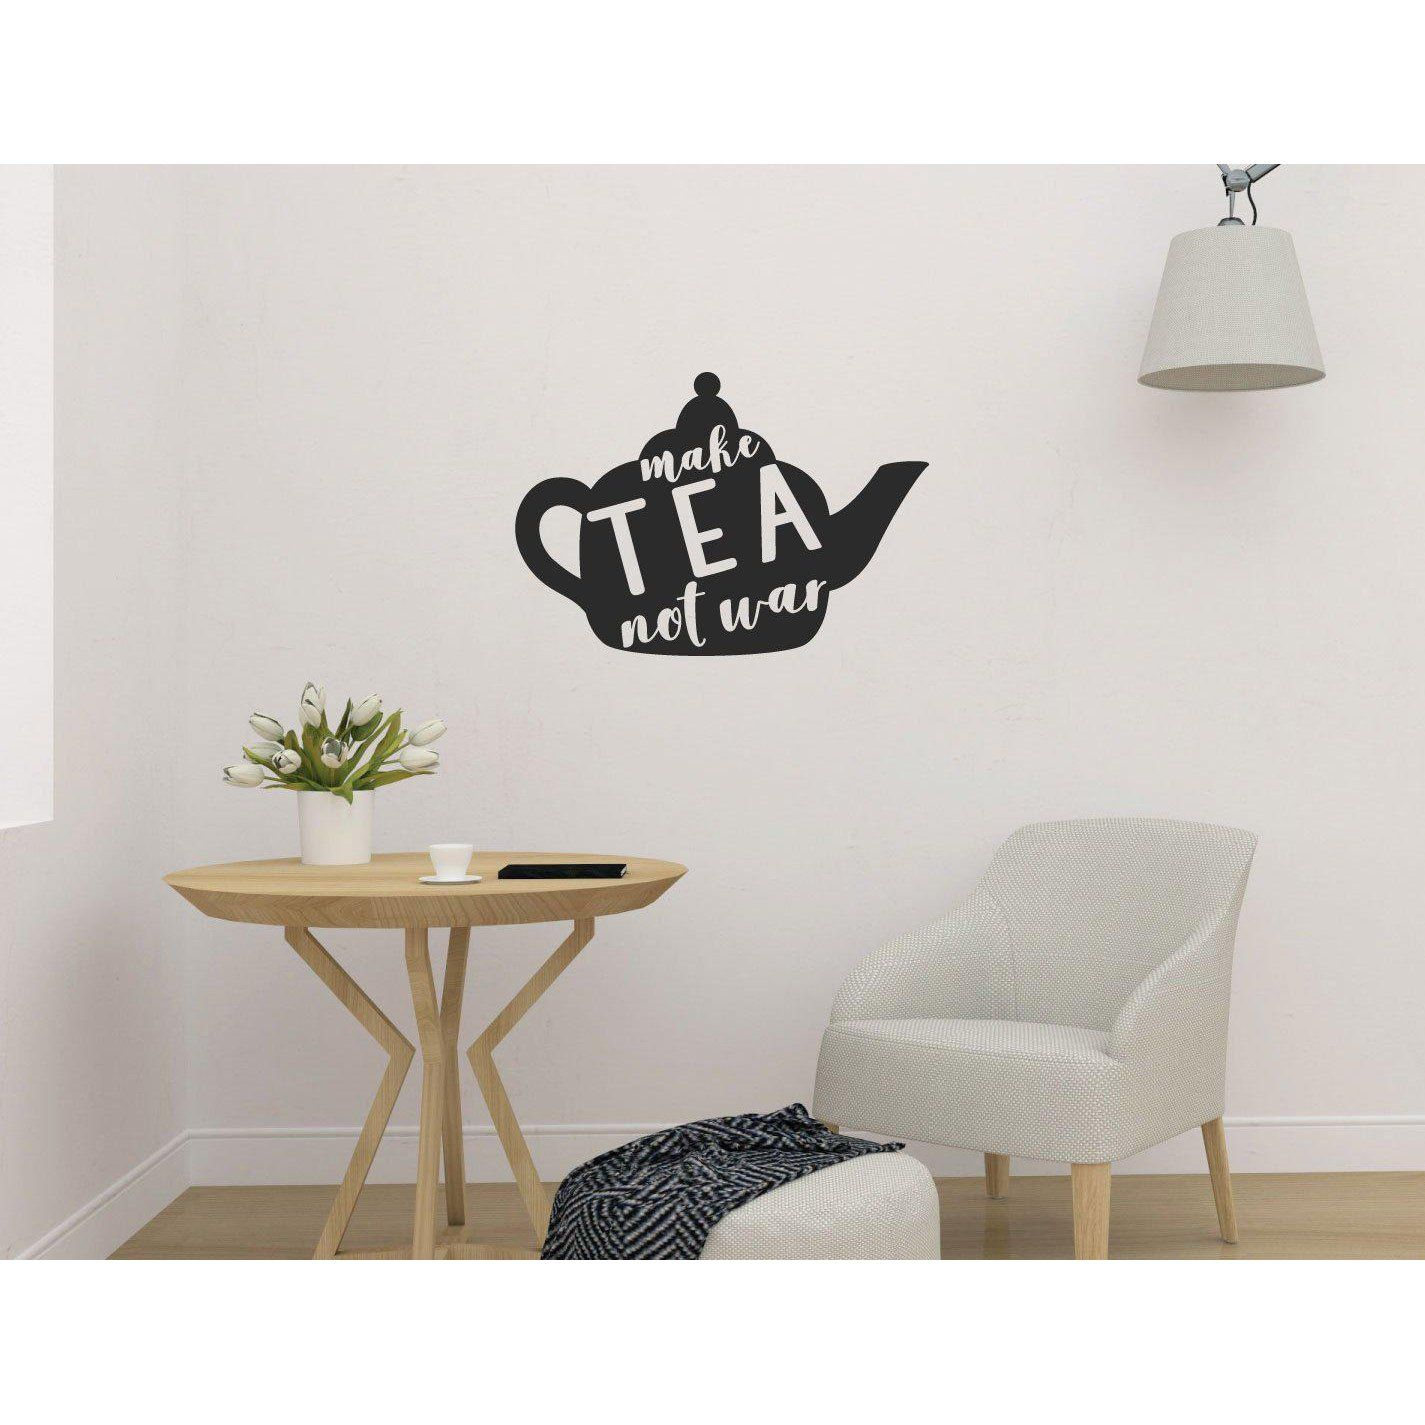 Make Tea Not War Funny Wall Sticker Quote Wall Stickers Quotes